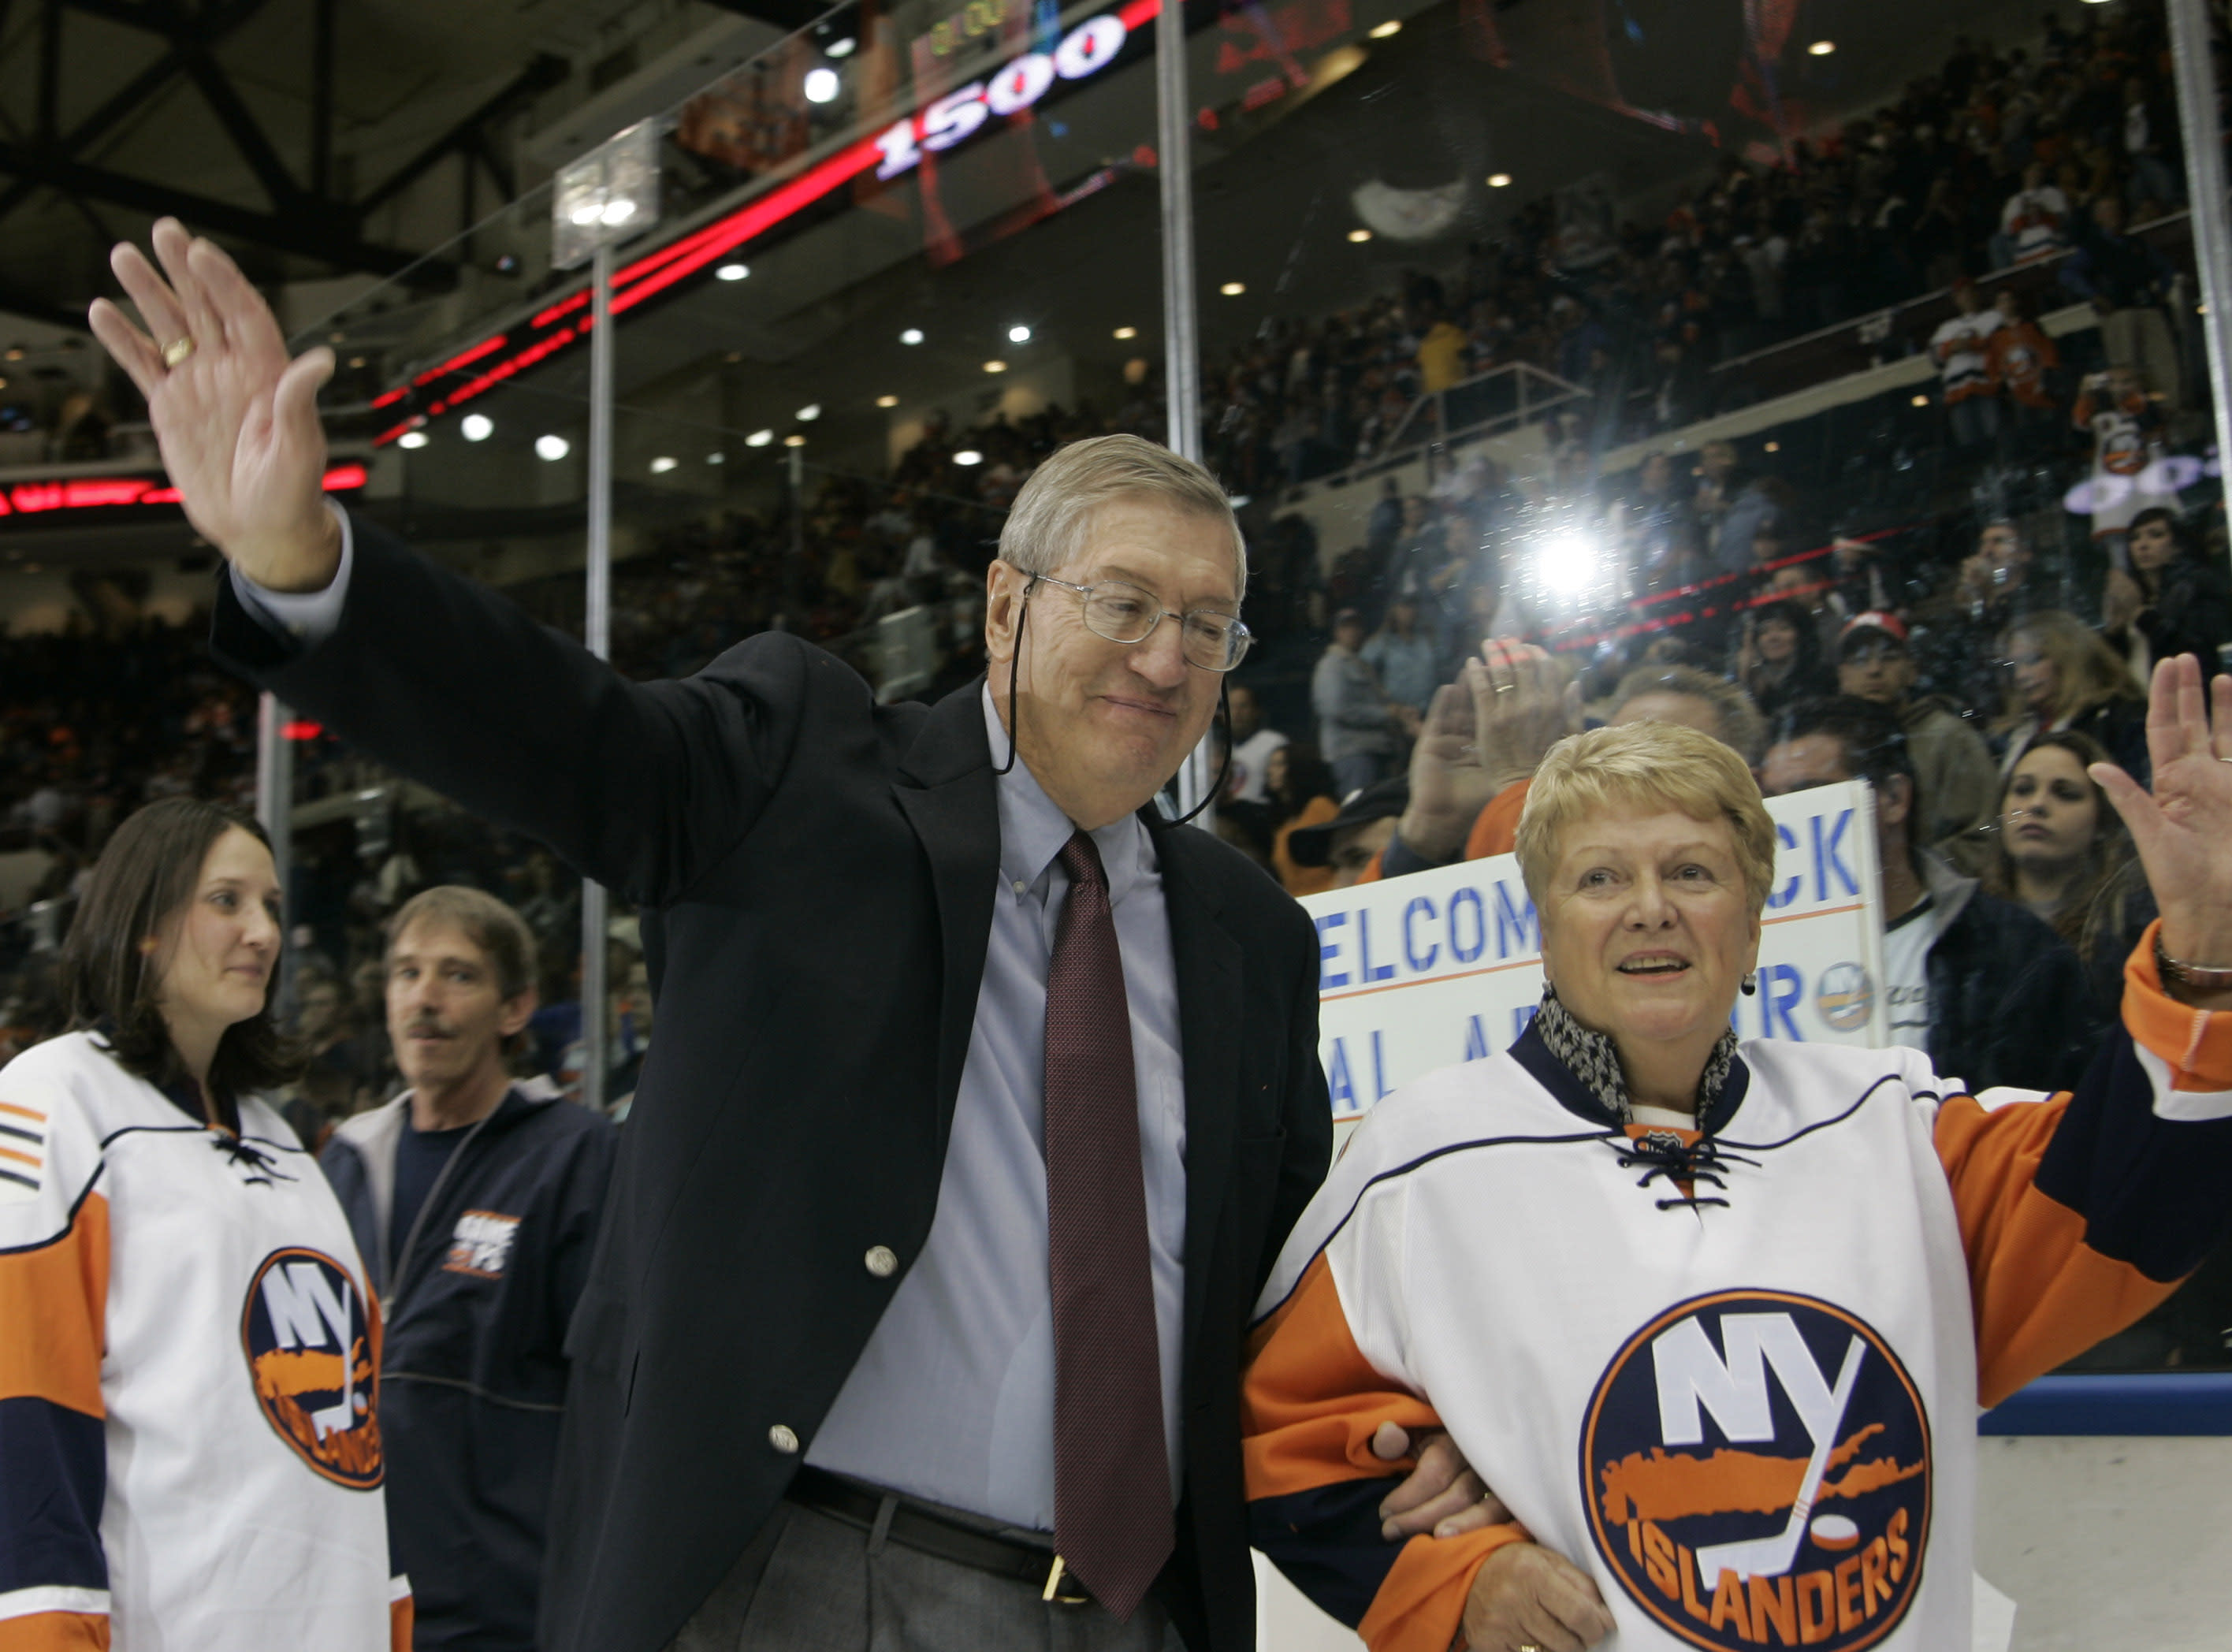 Al Arbour, who coached Isles to 4 Cup titles, dies at 82